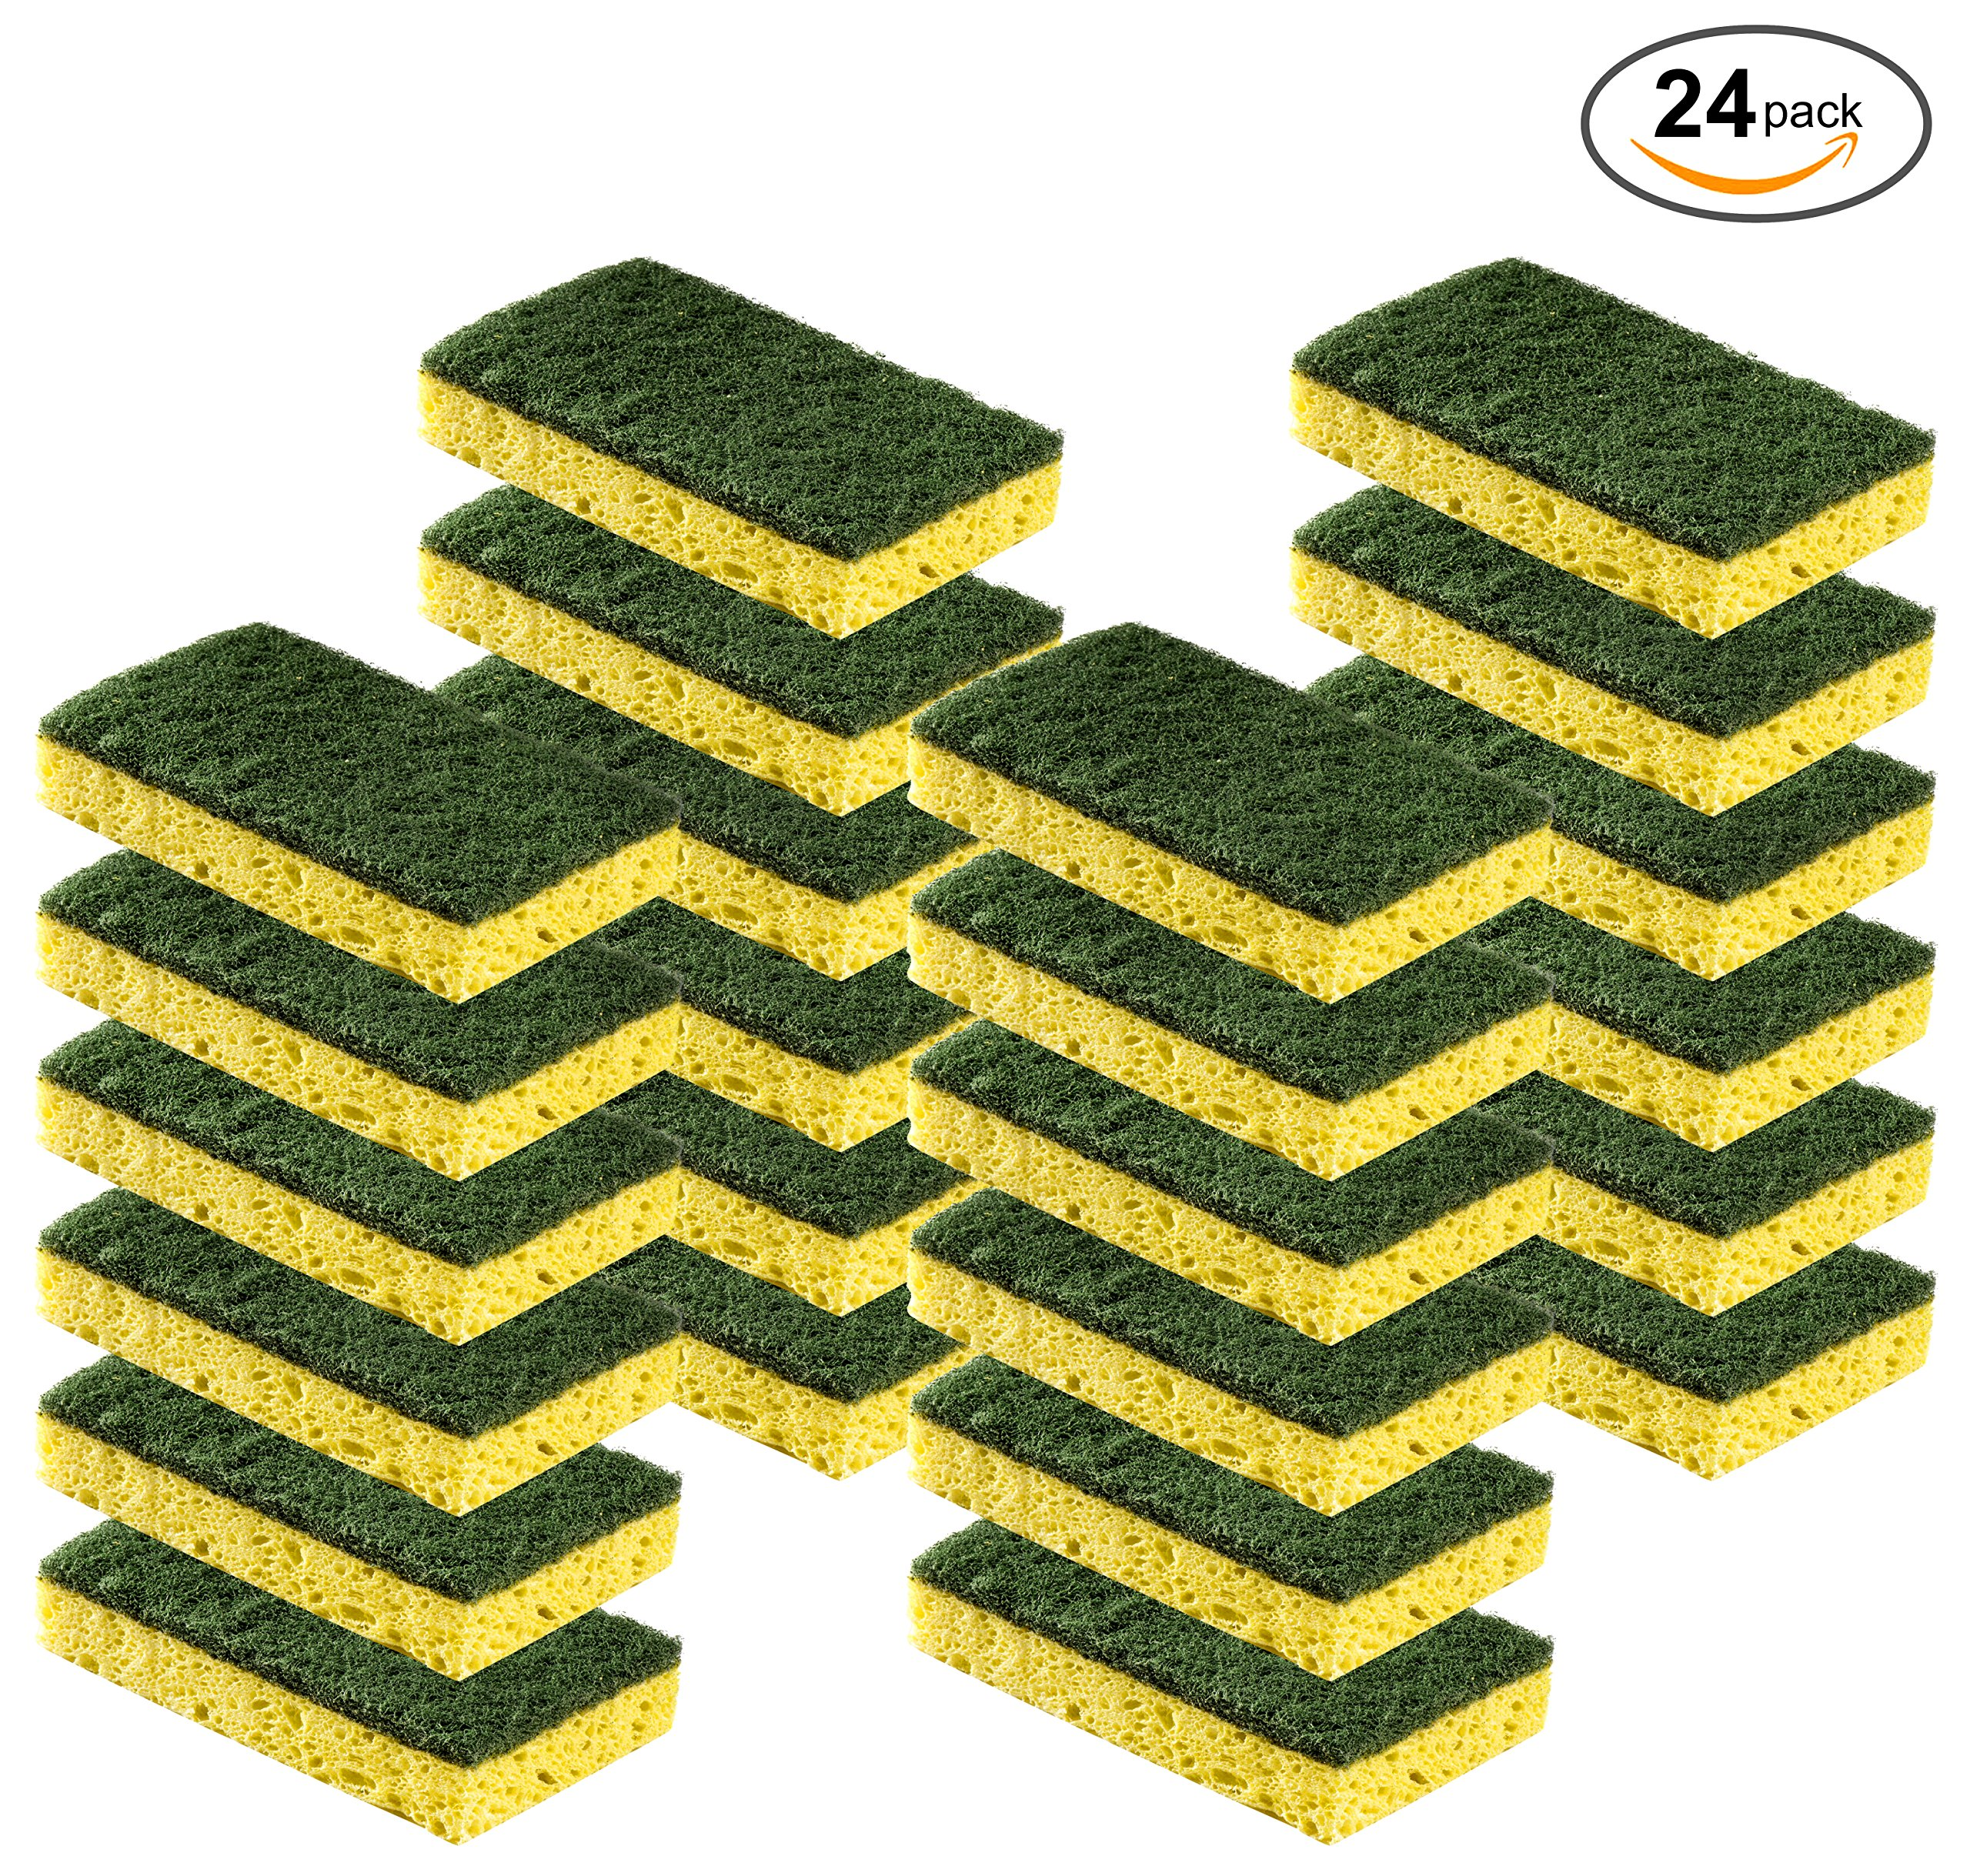 Cleaning Heavy Duty Scrub sponge by Scrub-it - Non-Scratch - Scrubbing Sponges Use for Kitchen, Bathroom & More - Yellow -24 Pack- by Scrub-It (Image #1)